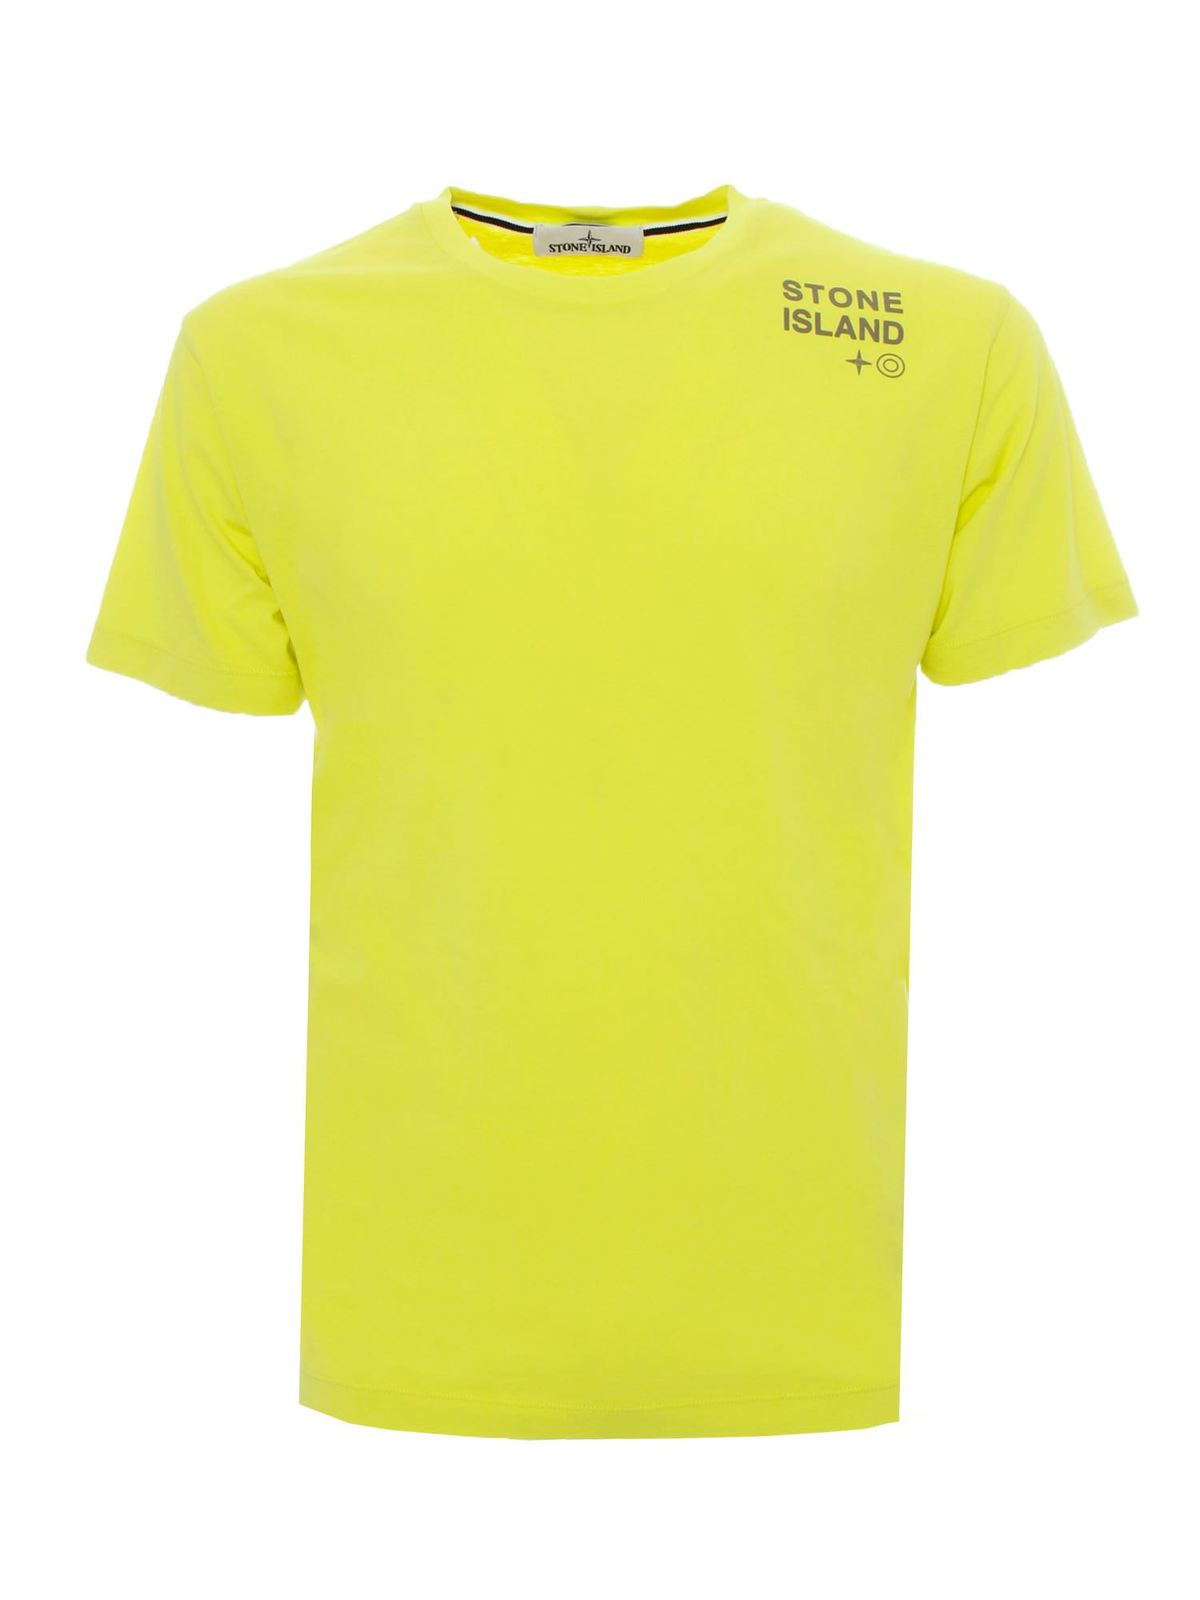 Stone Island Cottons LOGO LETTERING T-SHIRT IN YELLOW